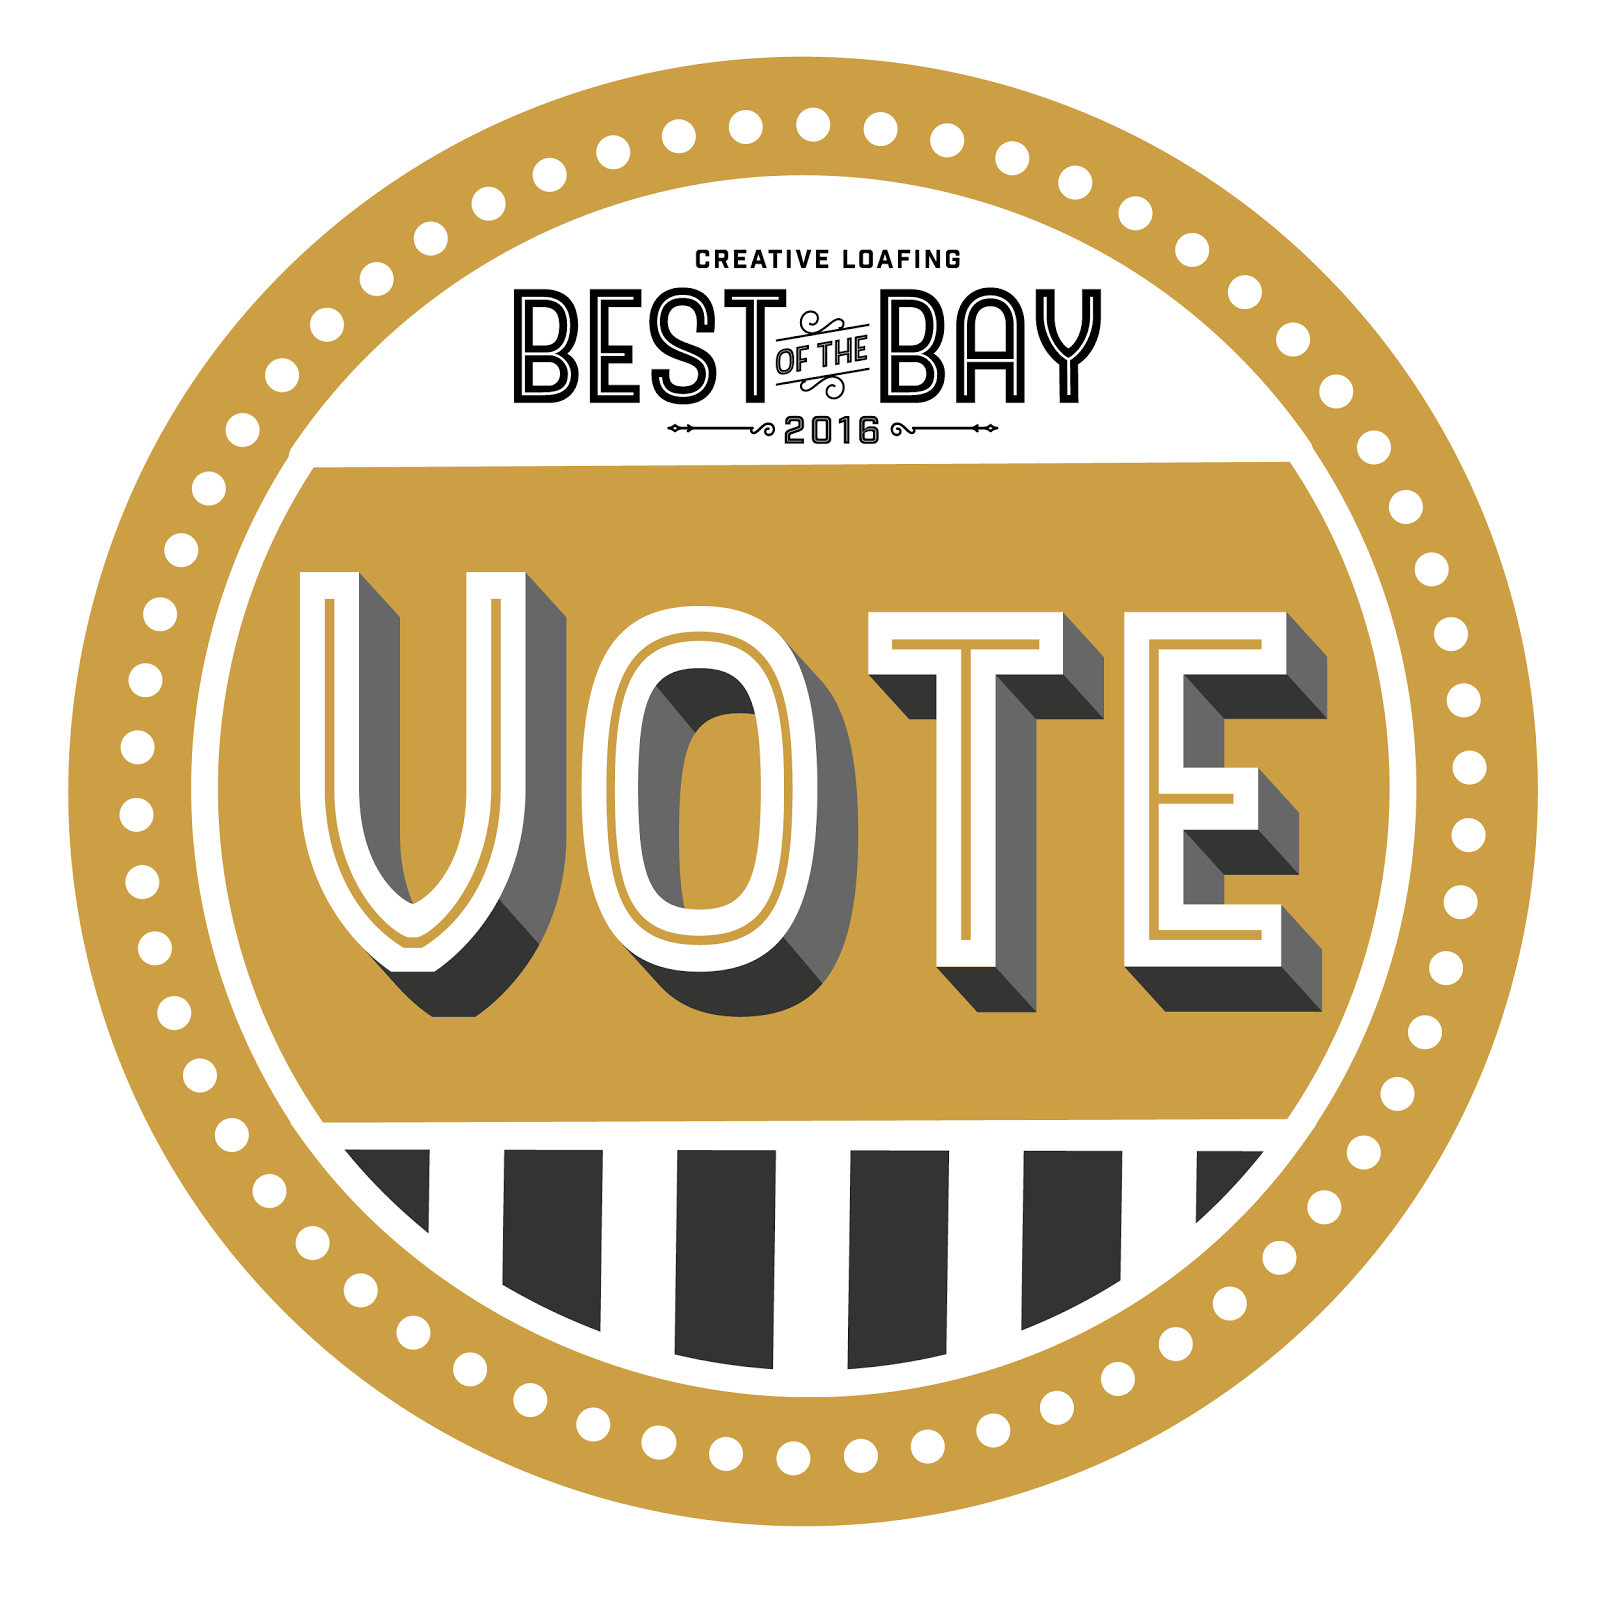 Creative Loafing's Best of the Bay '16